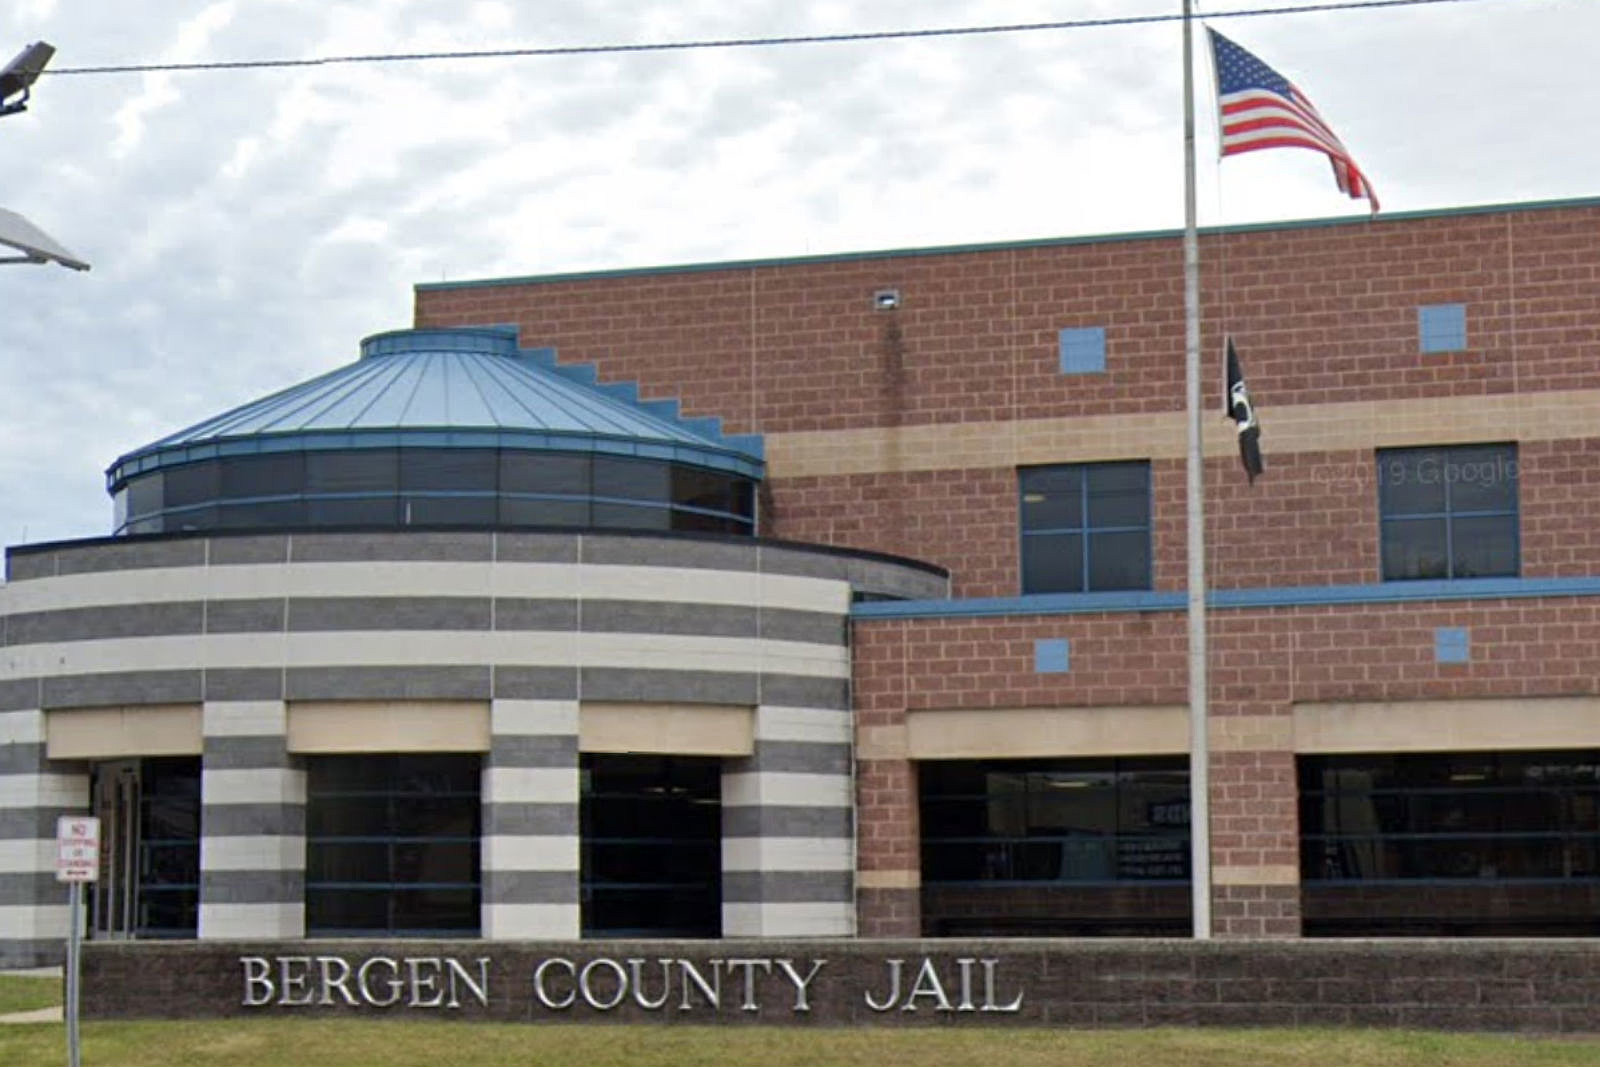 NJ jails barred from deals to detain non-citizens, under new law